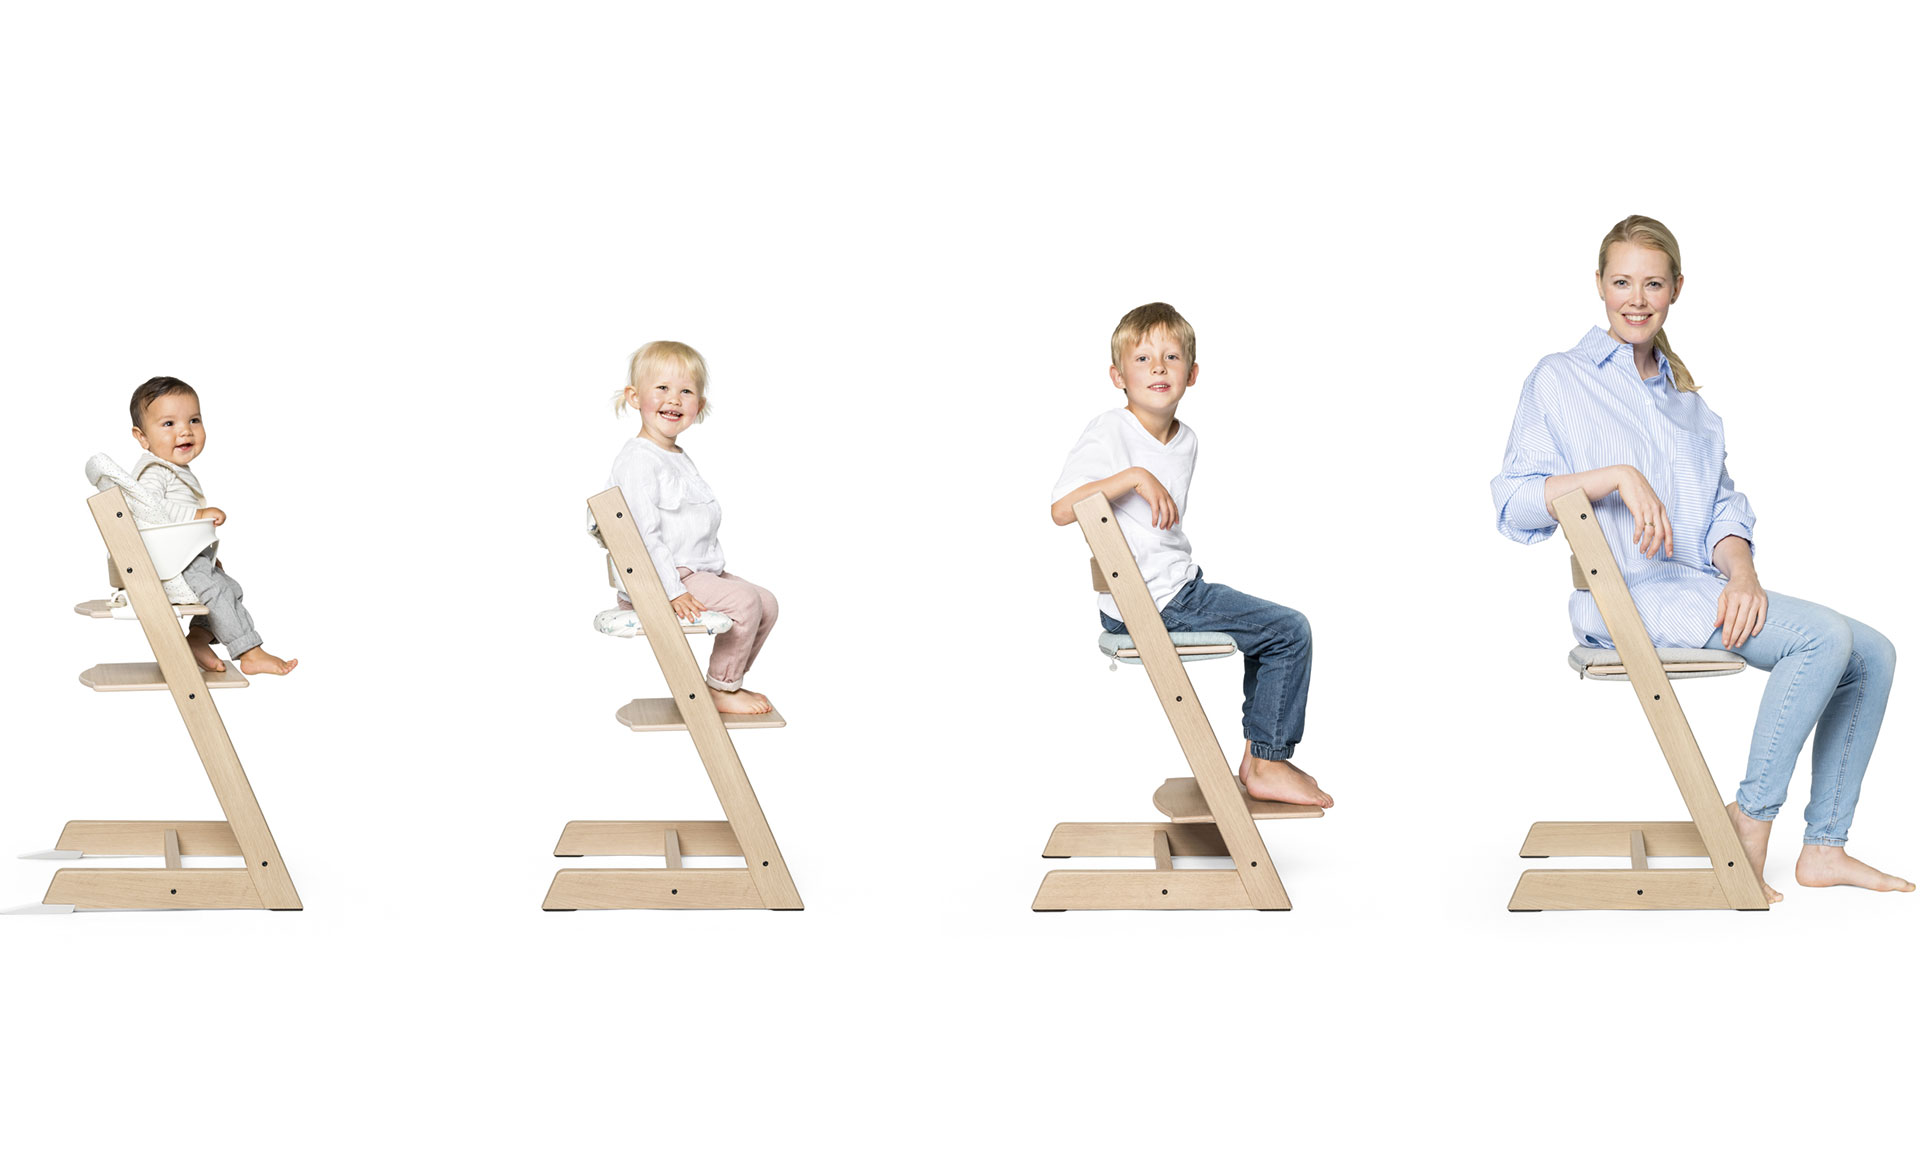 Can The Stokke Tripp Trapp Stand The Test Of Time?